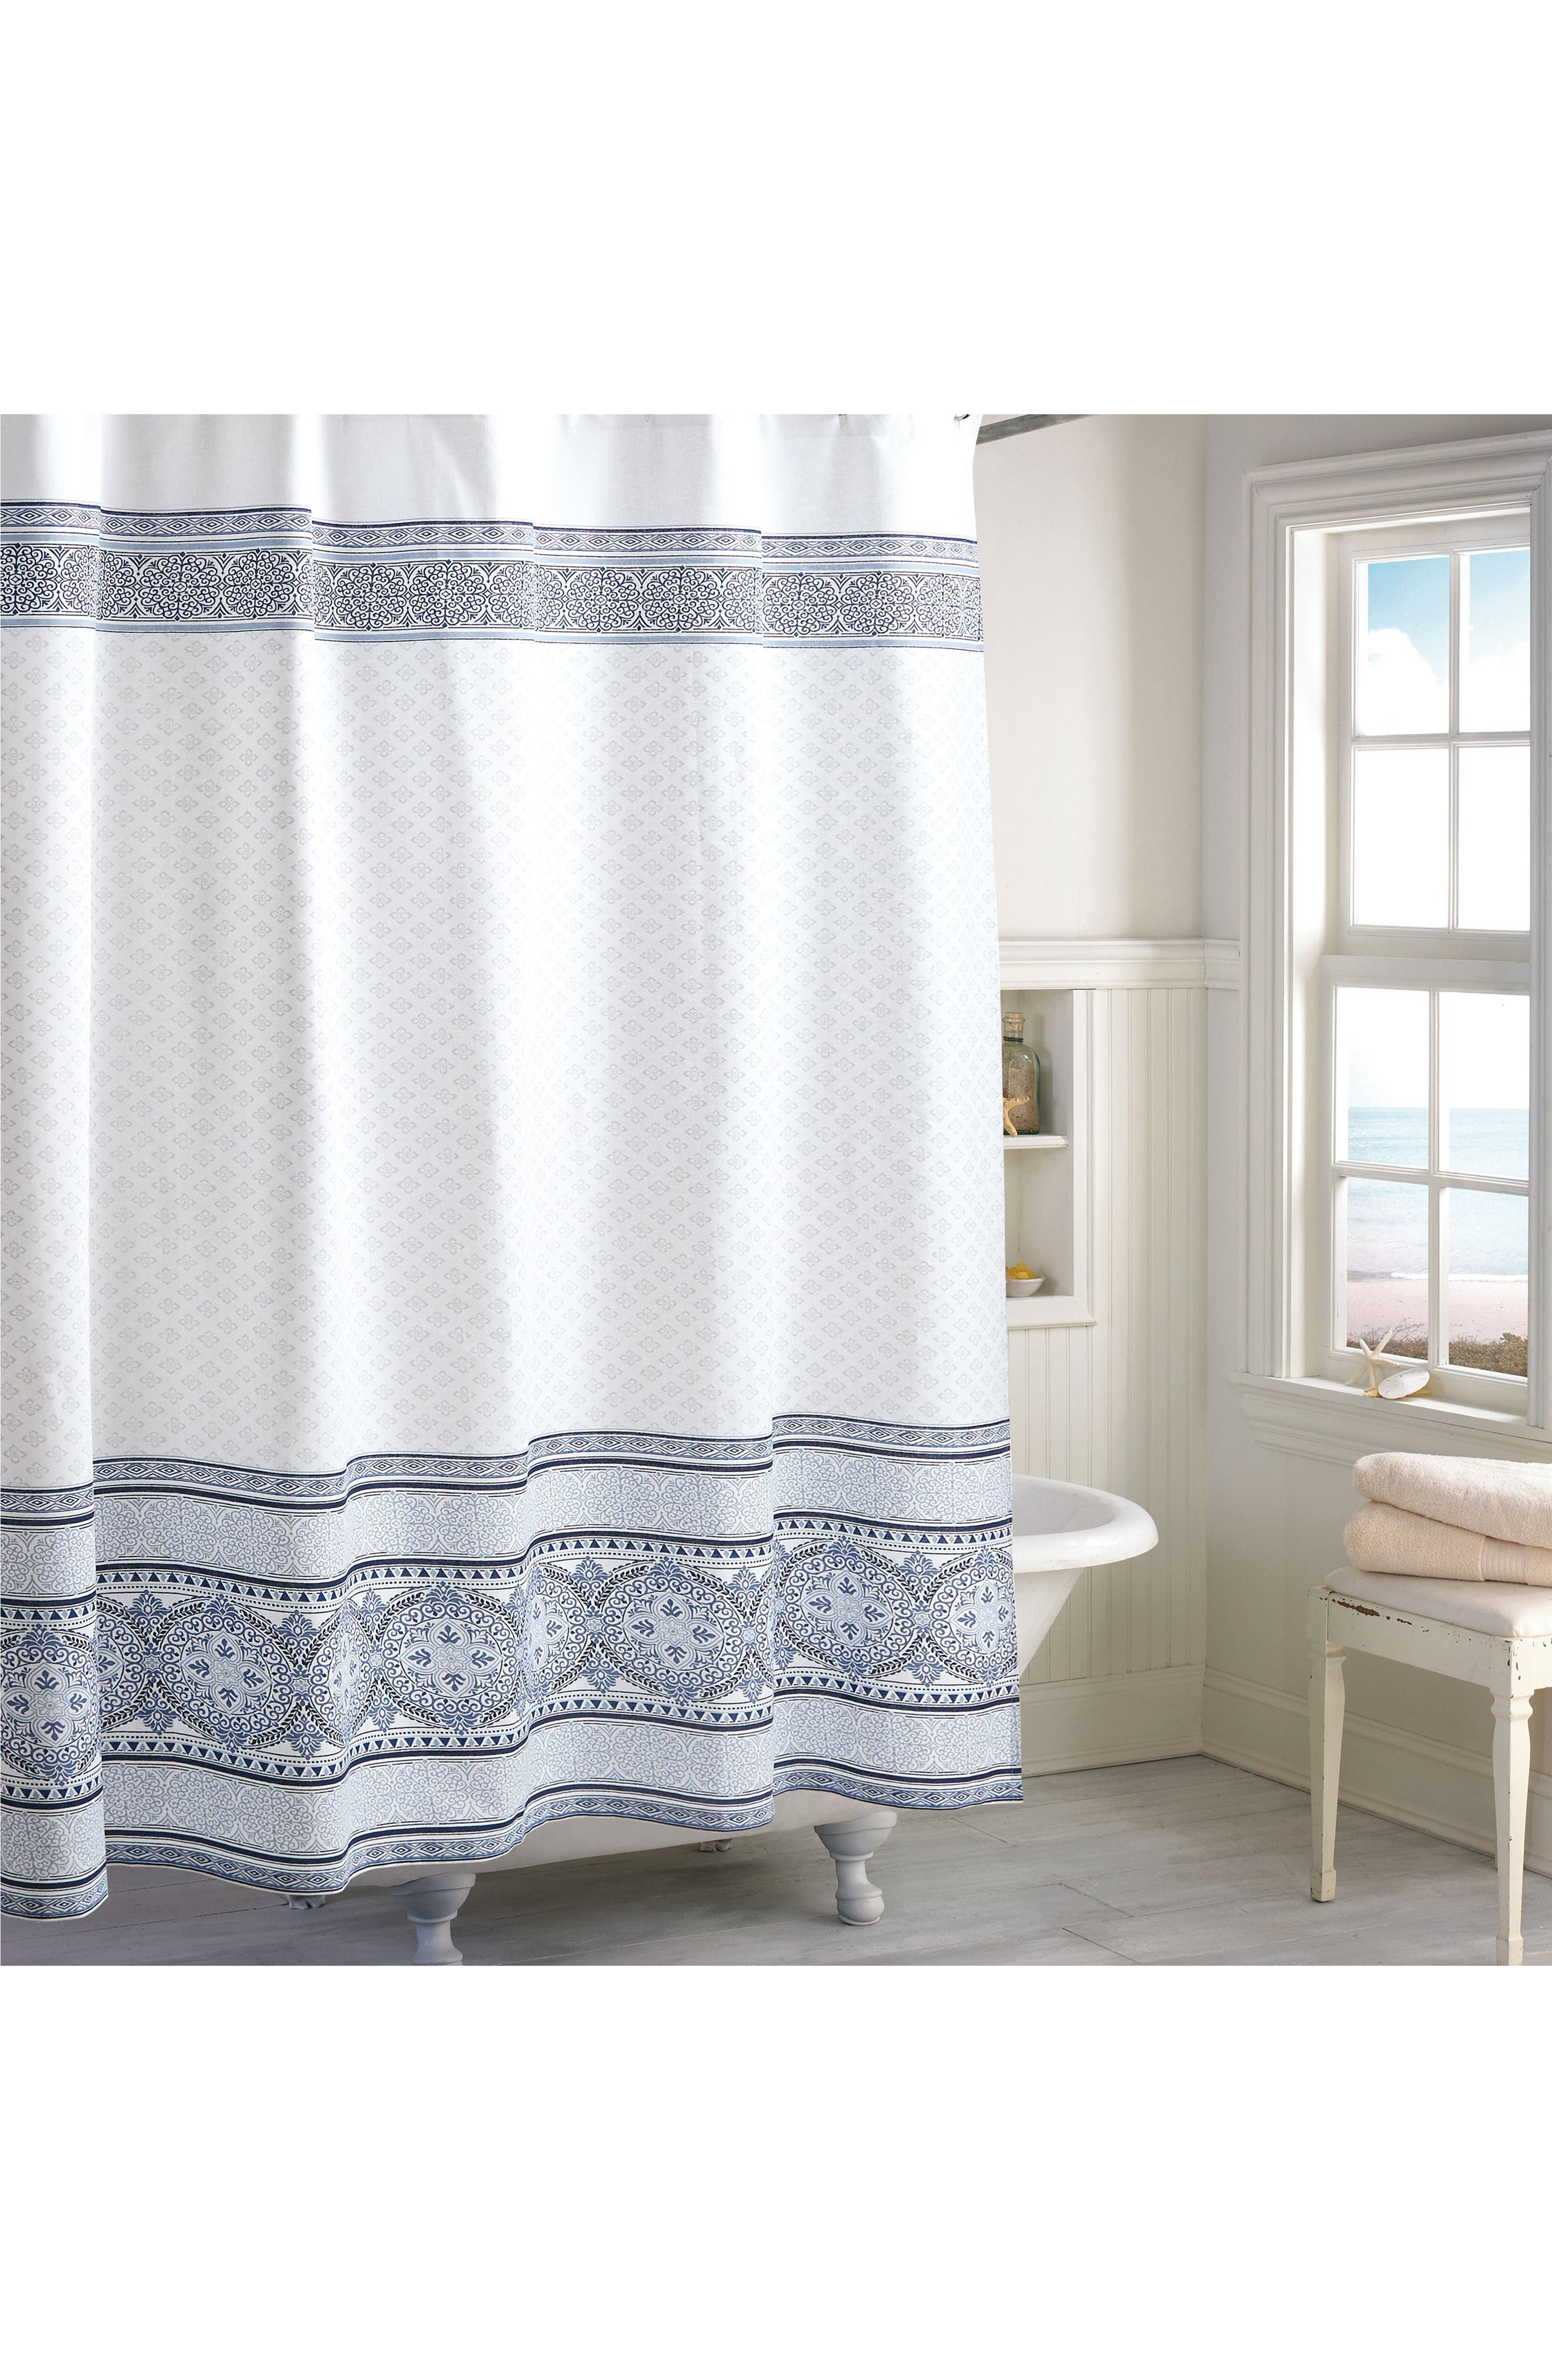 Peri Home Medallion Border Shower Curtain